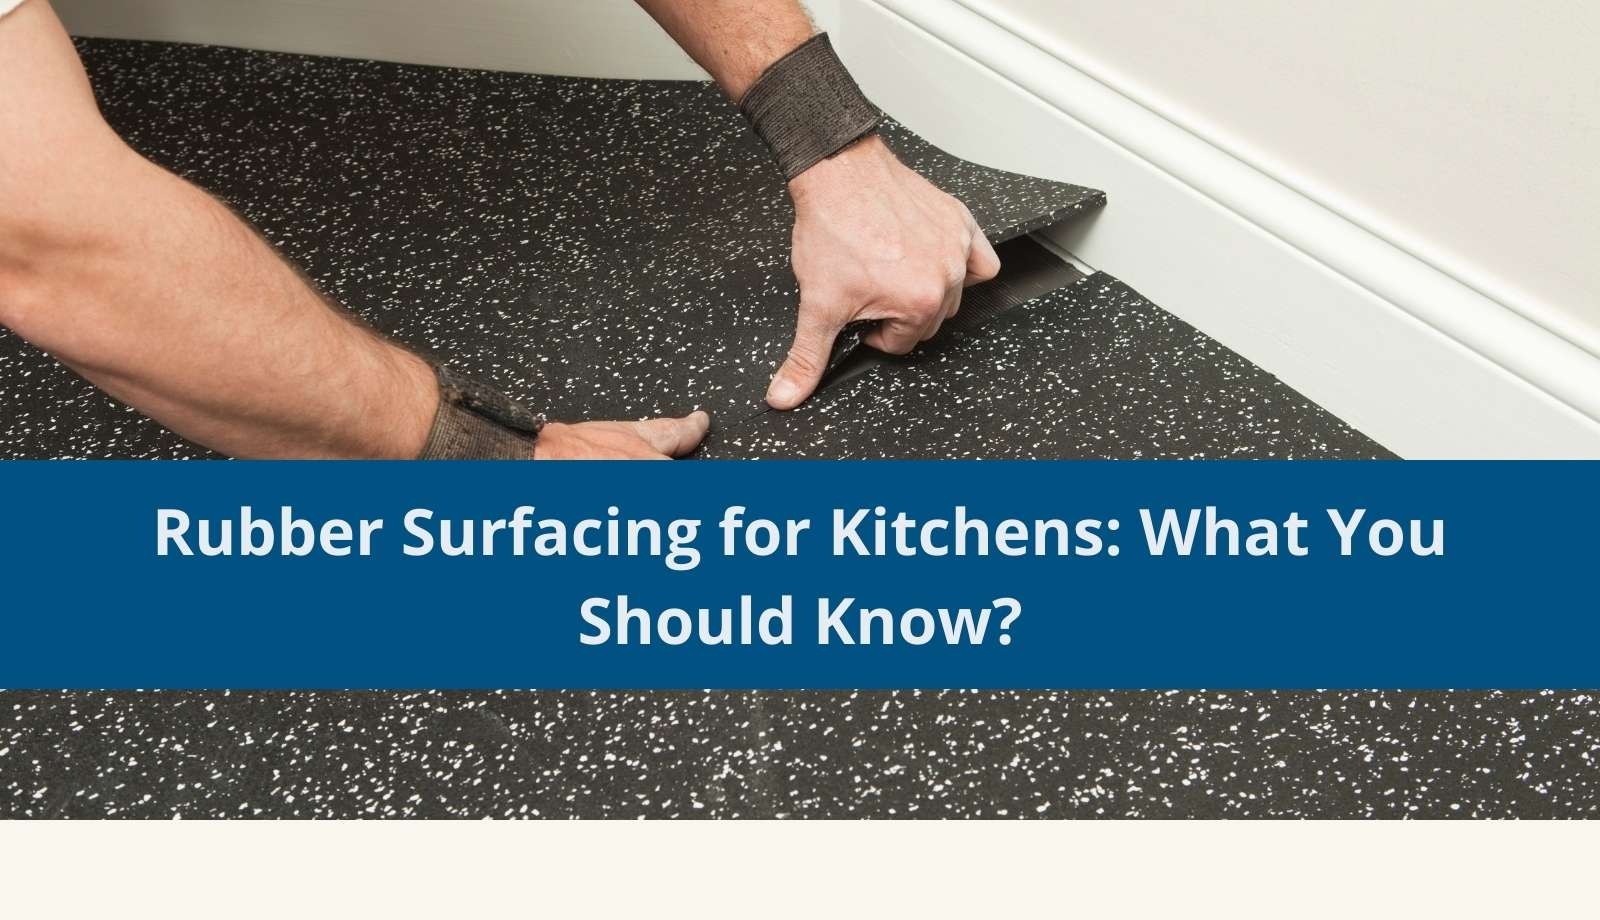 Rubber Surfacing for Kitchens: What You Should Know?